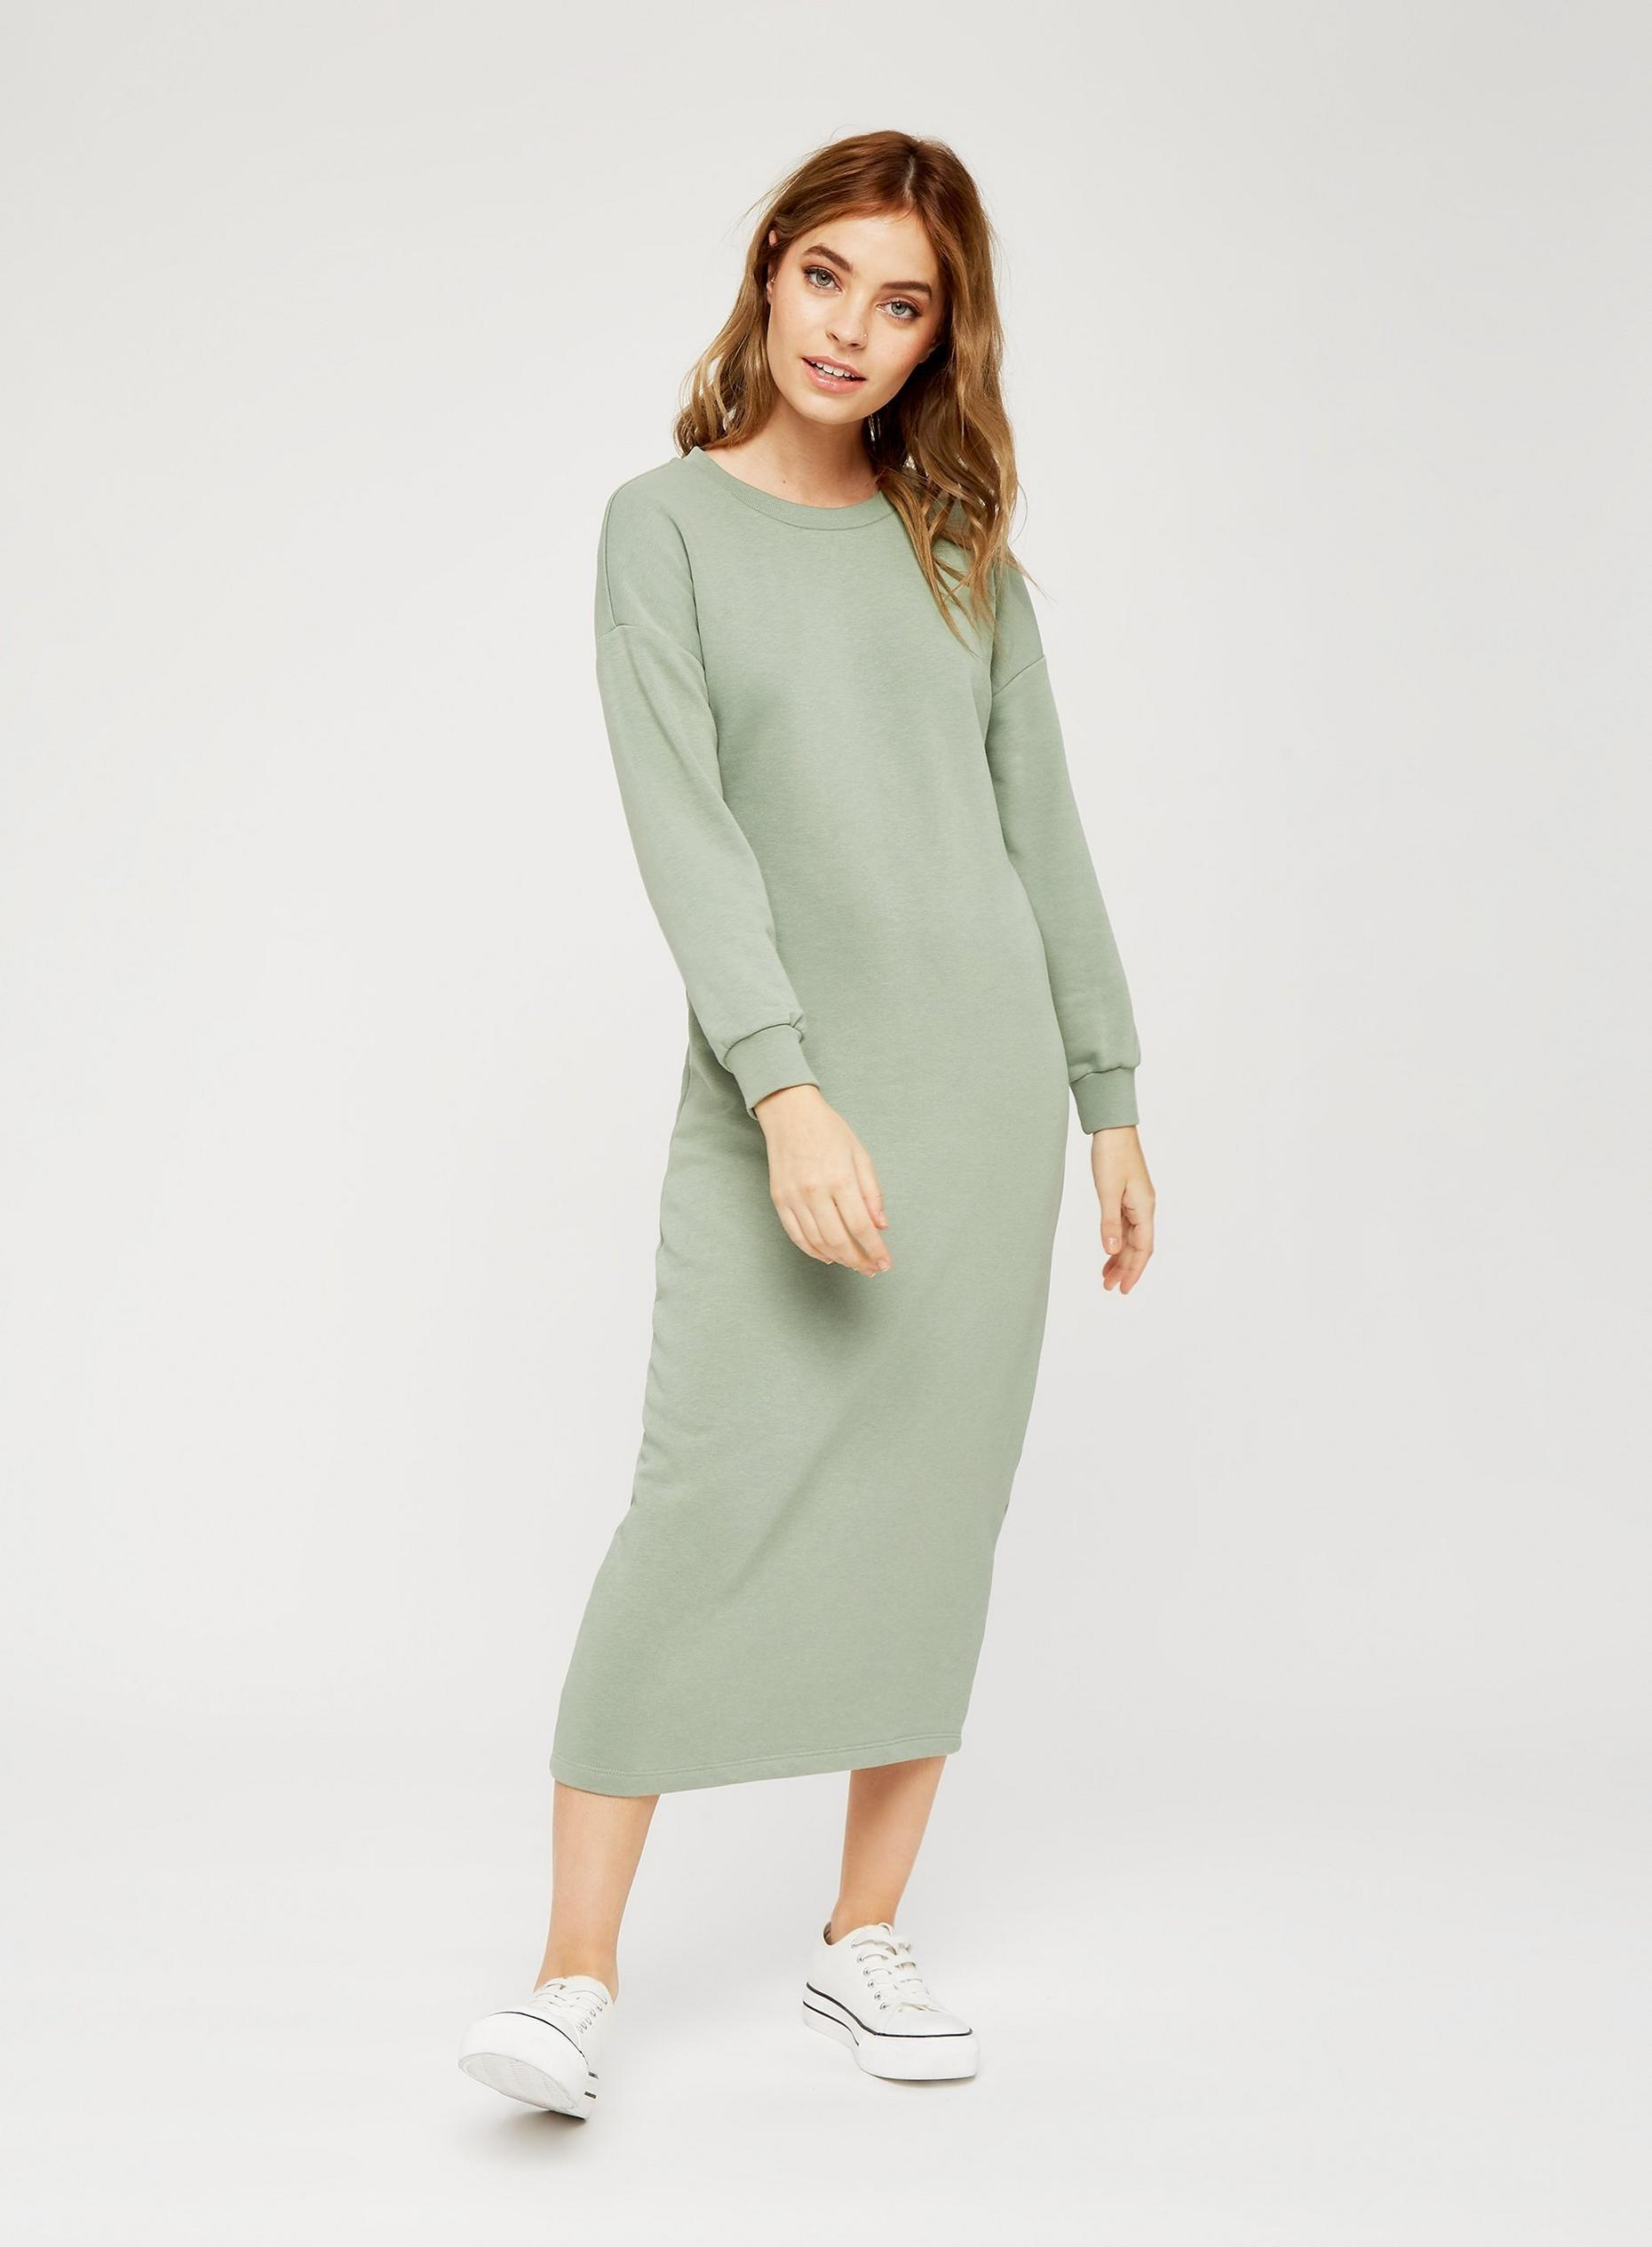 Petite Pistachio Knitted Dress